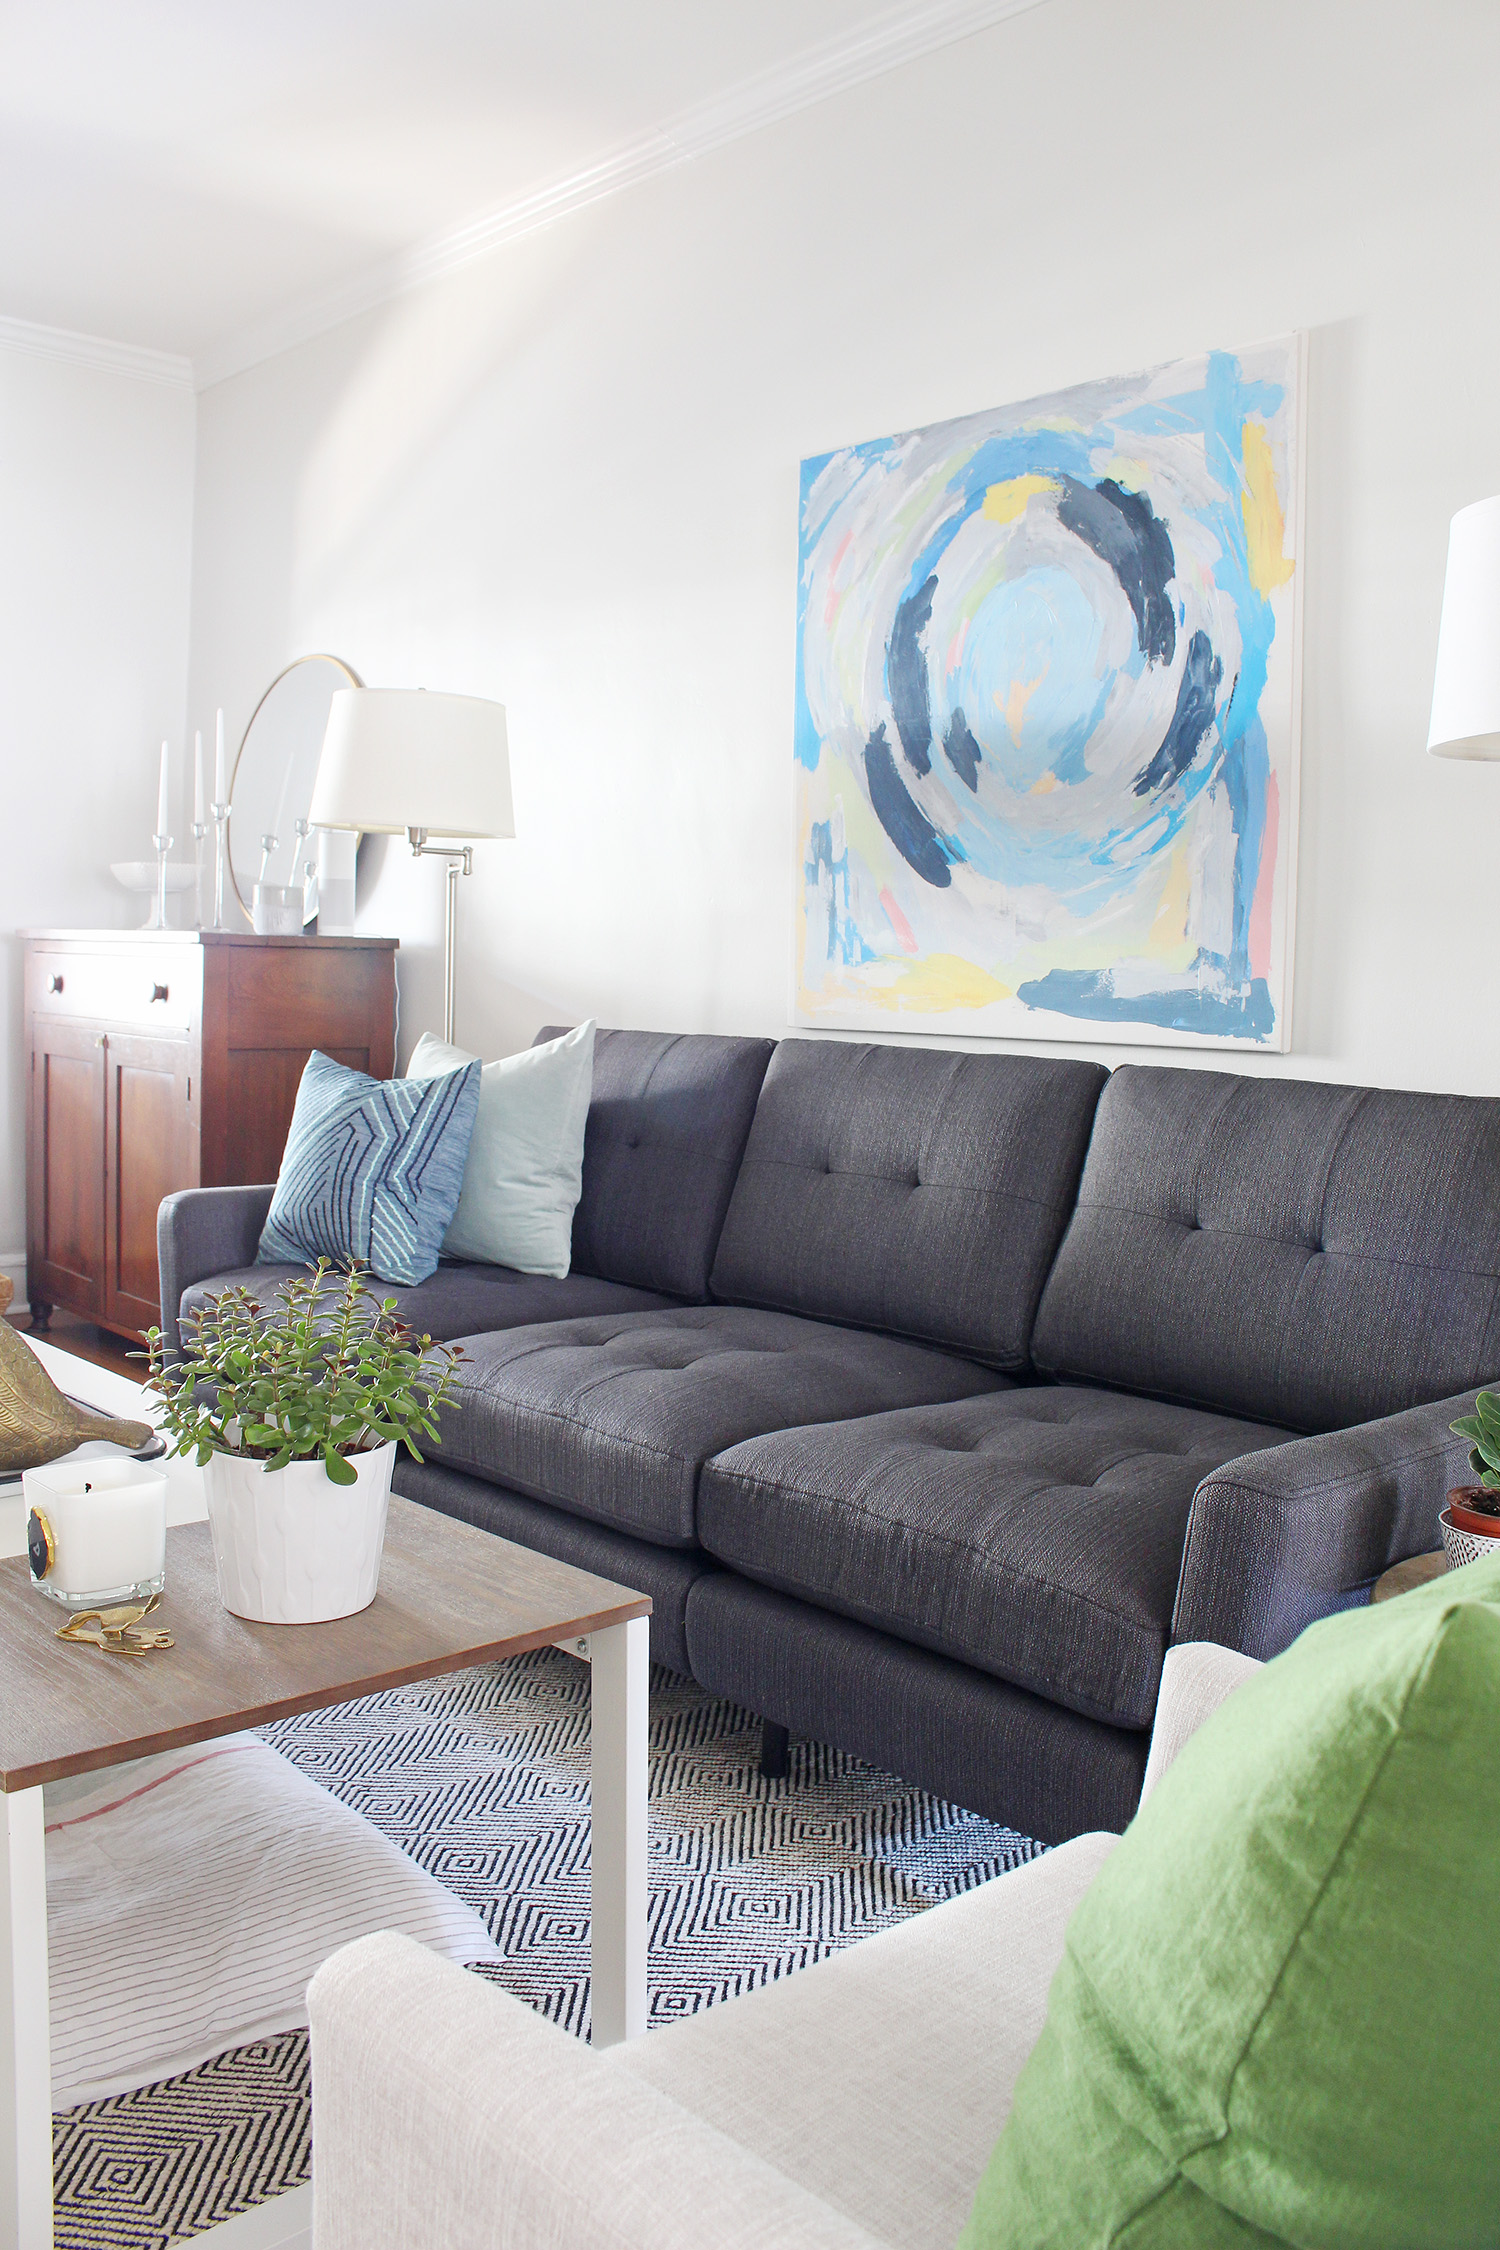 A mid-century modern eclectic living room mixes new and old to create a cozy space. The neutral charcoal gray sofa has pops of color thanks to the blue throw pillows.